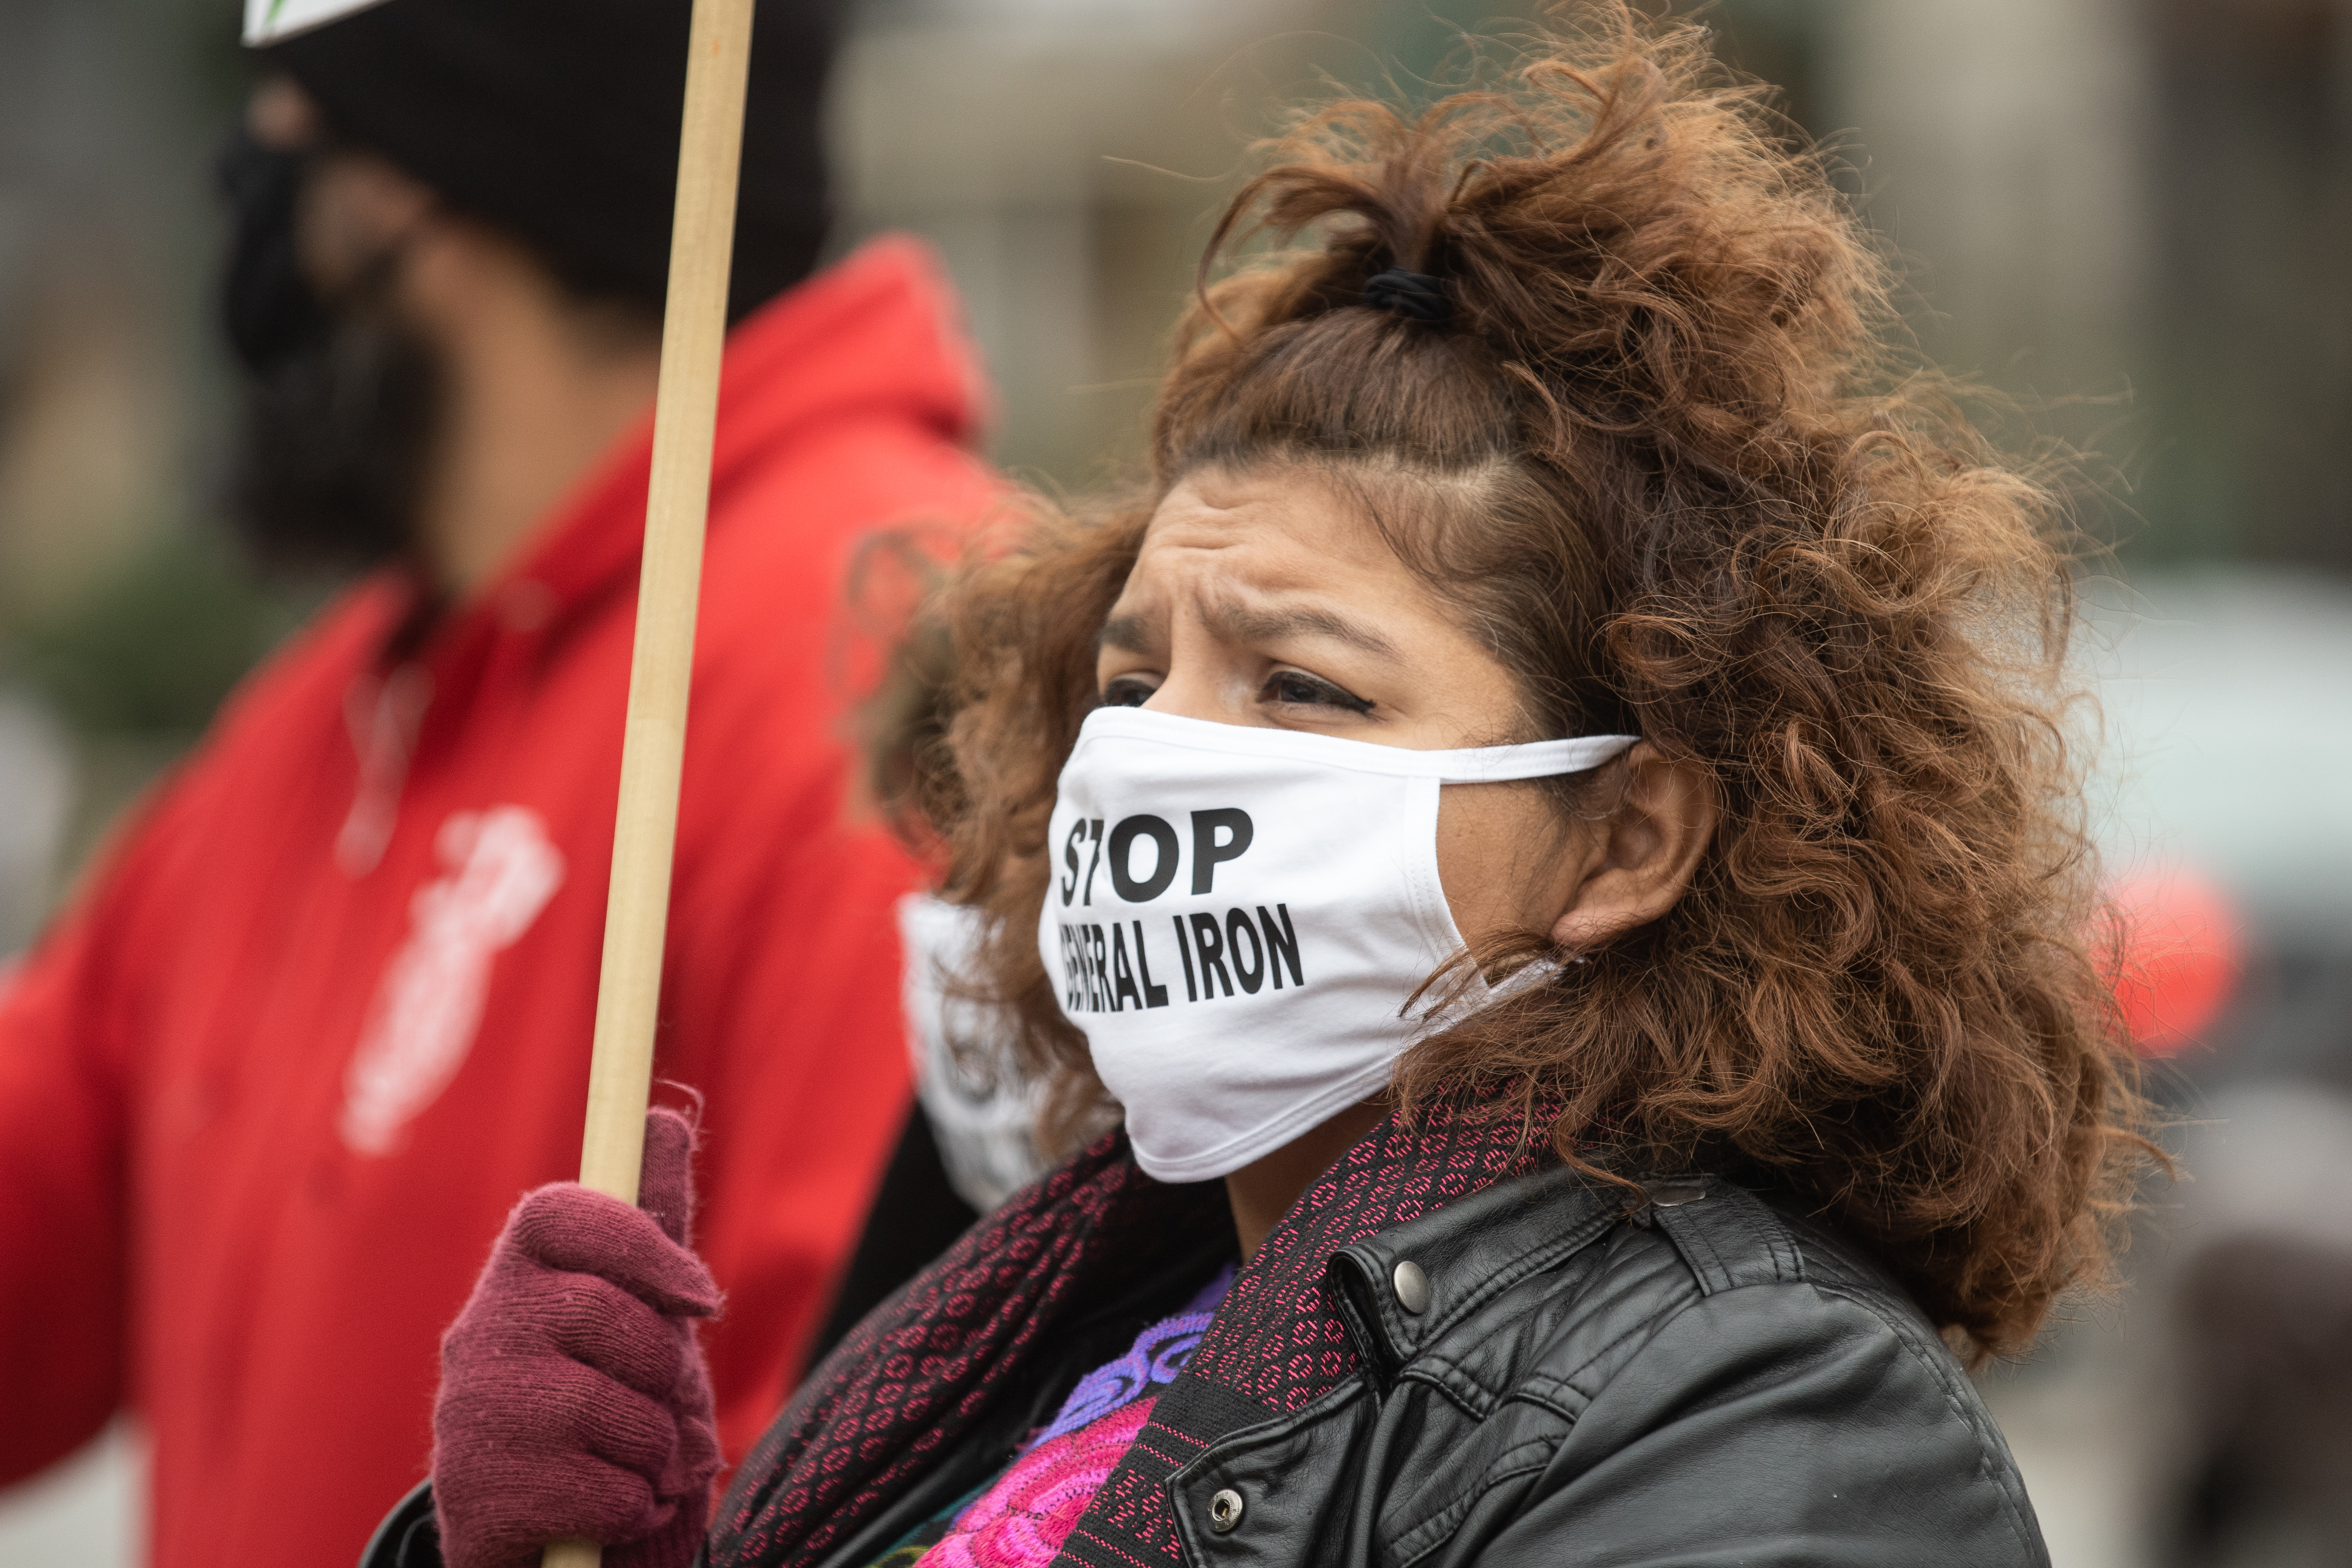 Nelly Martinez attends a November 2020 protest to demand Chicago Mayor Lori Lightfoot to deny the final permit that will allow General Iron to move from Lincoln Park, a mostly white neighborhood, to the Southeast Side, which has a mostly Latino population. | Pat Nabong/Sun-Times